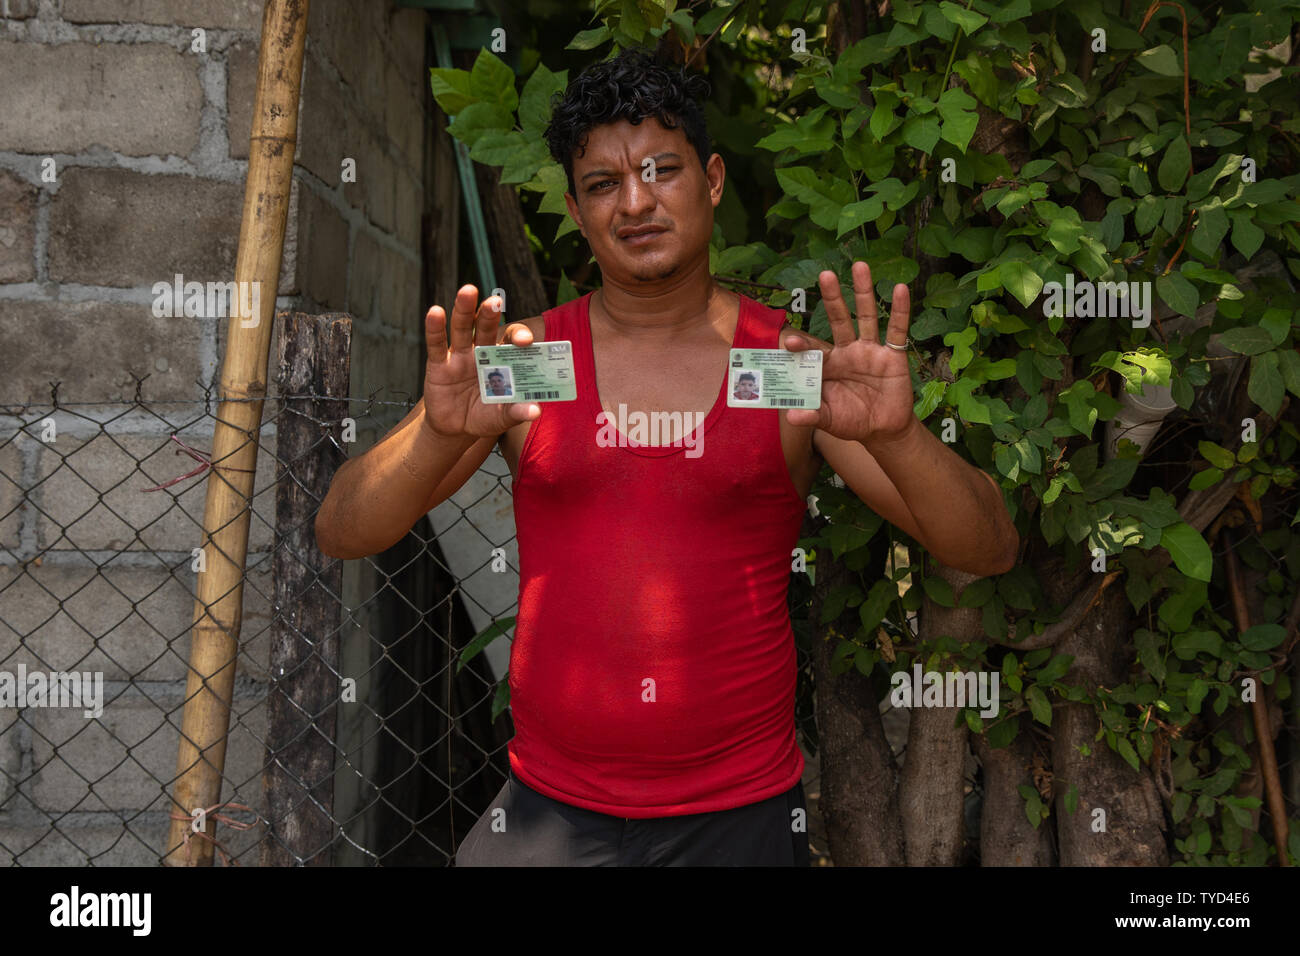 Brayan Rosales Hidalgo from Honduras  holds his and his son's Antony's (INM) Instituto Nacional de Migración regional visitor visa cards near a sports complex, a makeshift detention center in Mapastepec, Mexico on May 7, 2019. The regional visas that Rosales has is only good for four Southern Mexican states, Tabasco, Chiapas, Campeche and Quintana Roo.    Photo by Ariana Drehsler/UPI Stock Photo